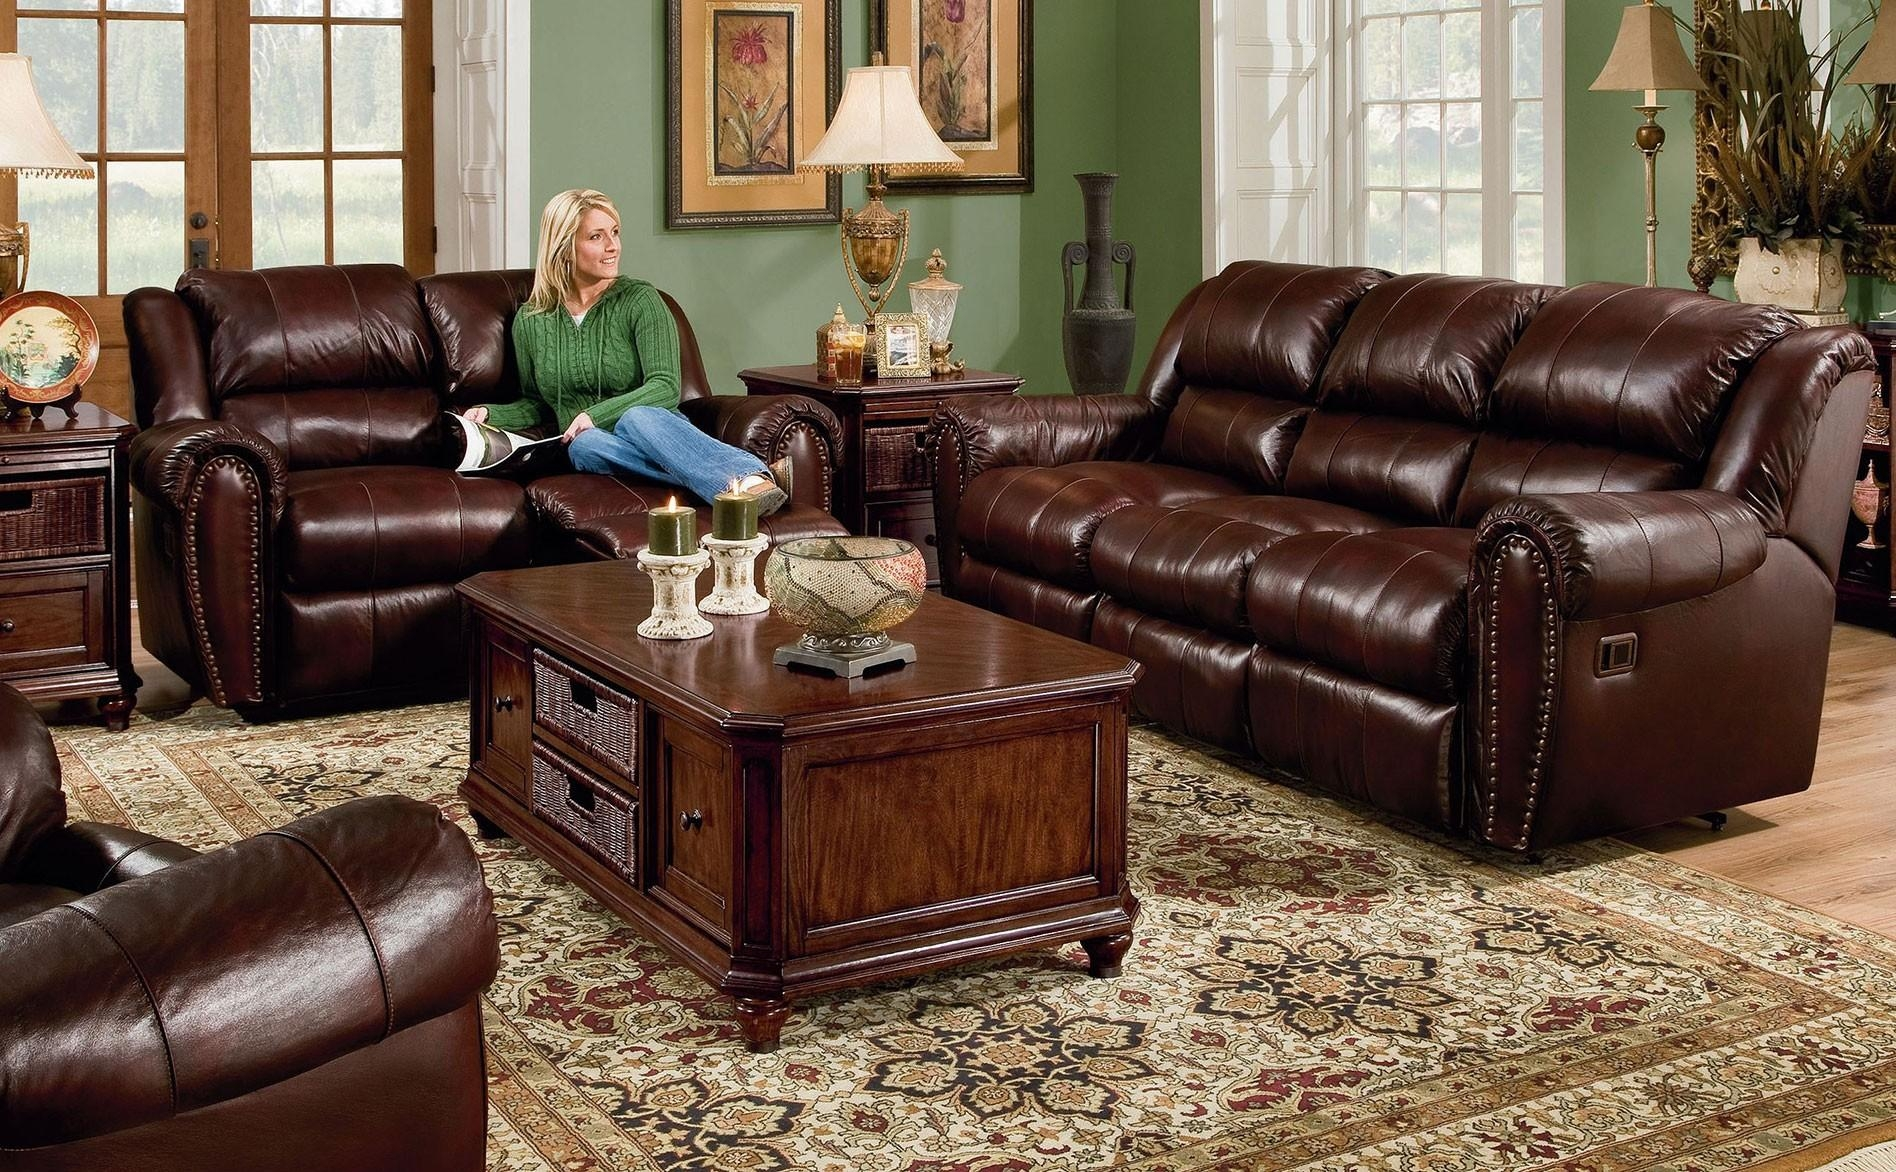 durham sofa by birch lane freedom benson reviews 20 photos furniture sofas ideas